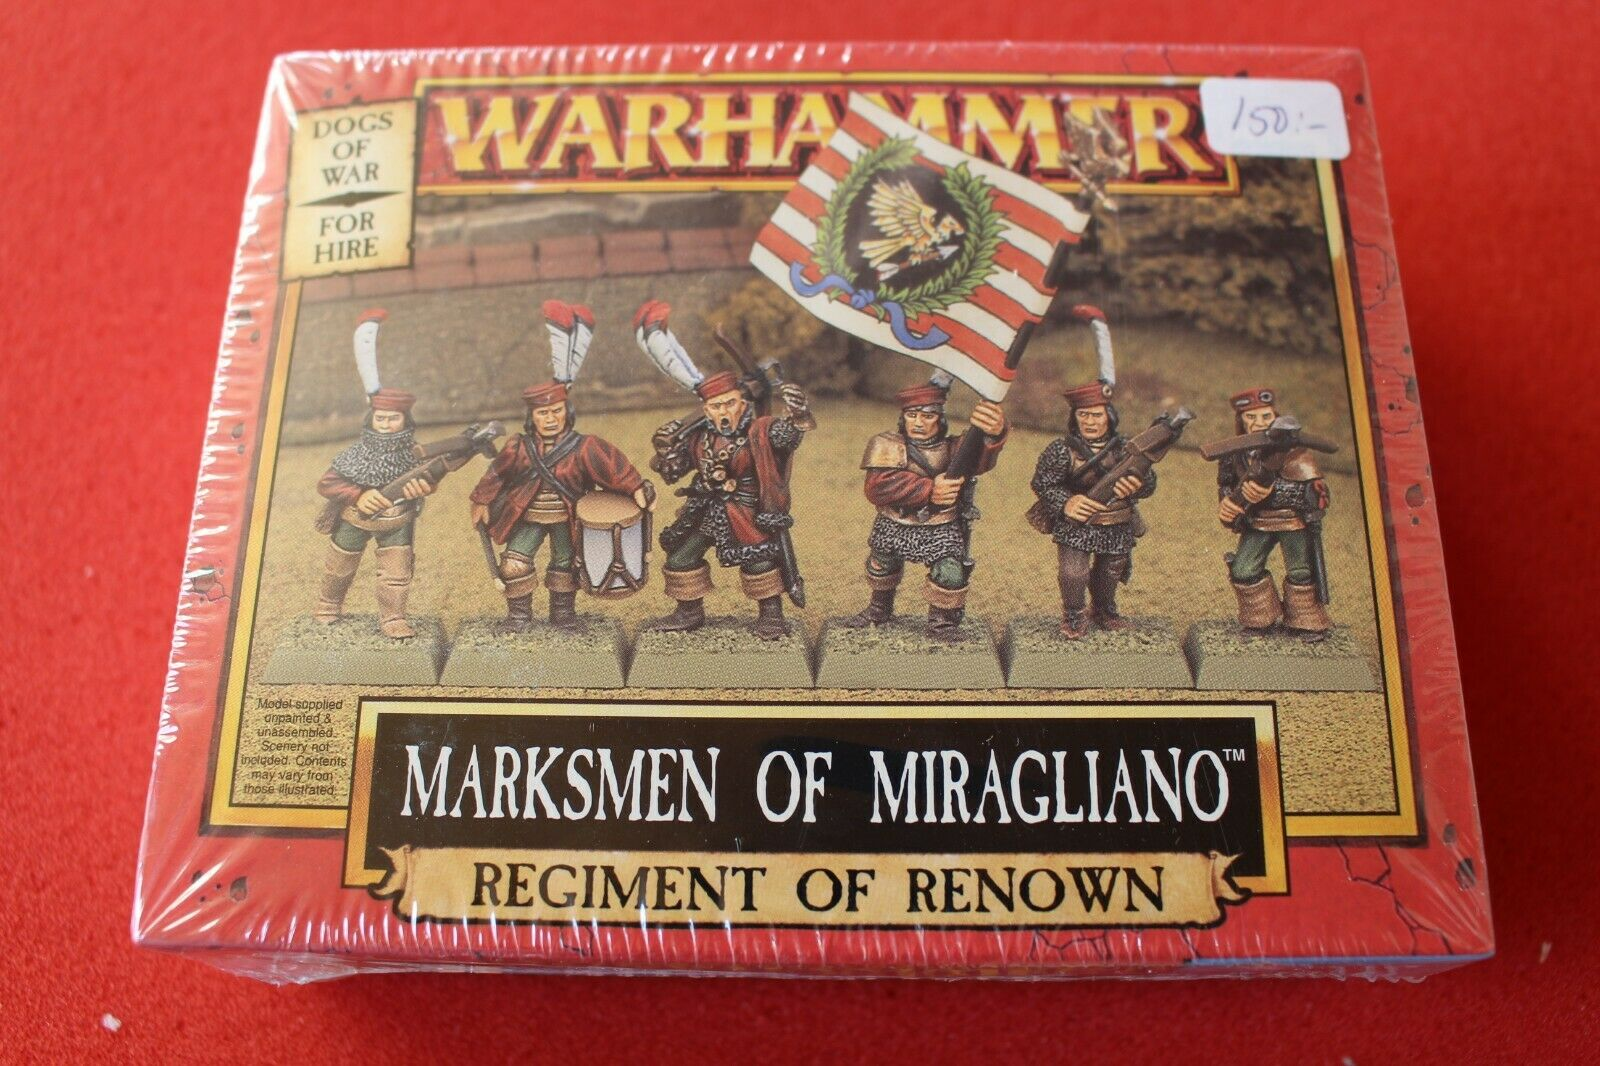 Spel arbetarhop Warhammer Dogs of War Markmänts of Miragllano BNIB Sealed Metal GW